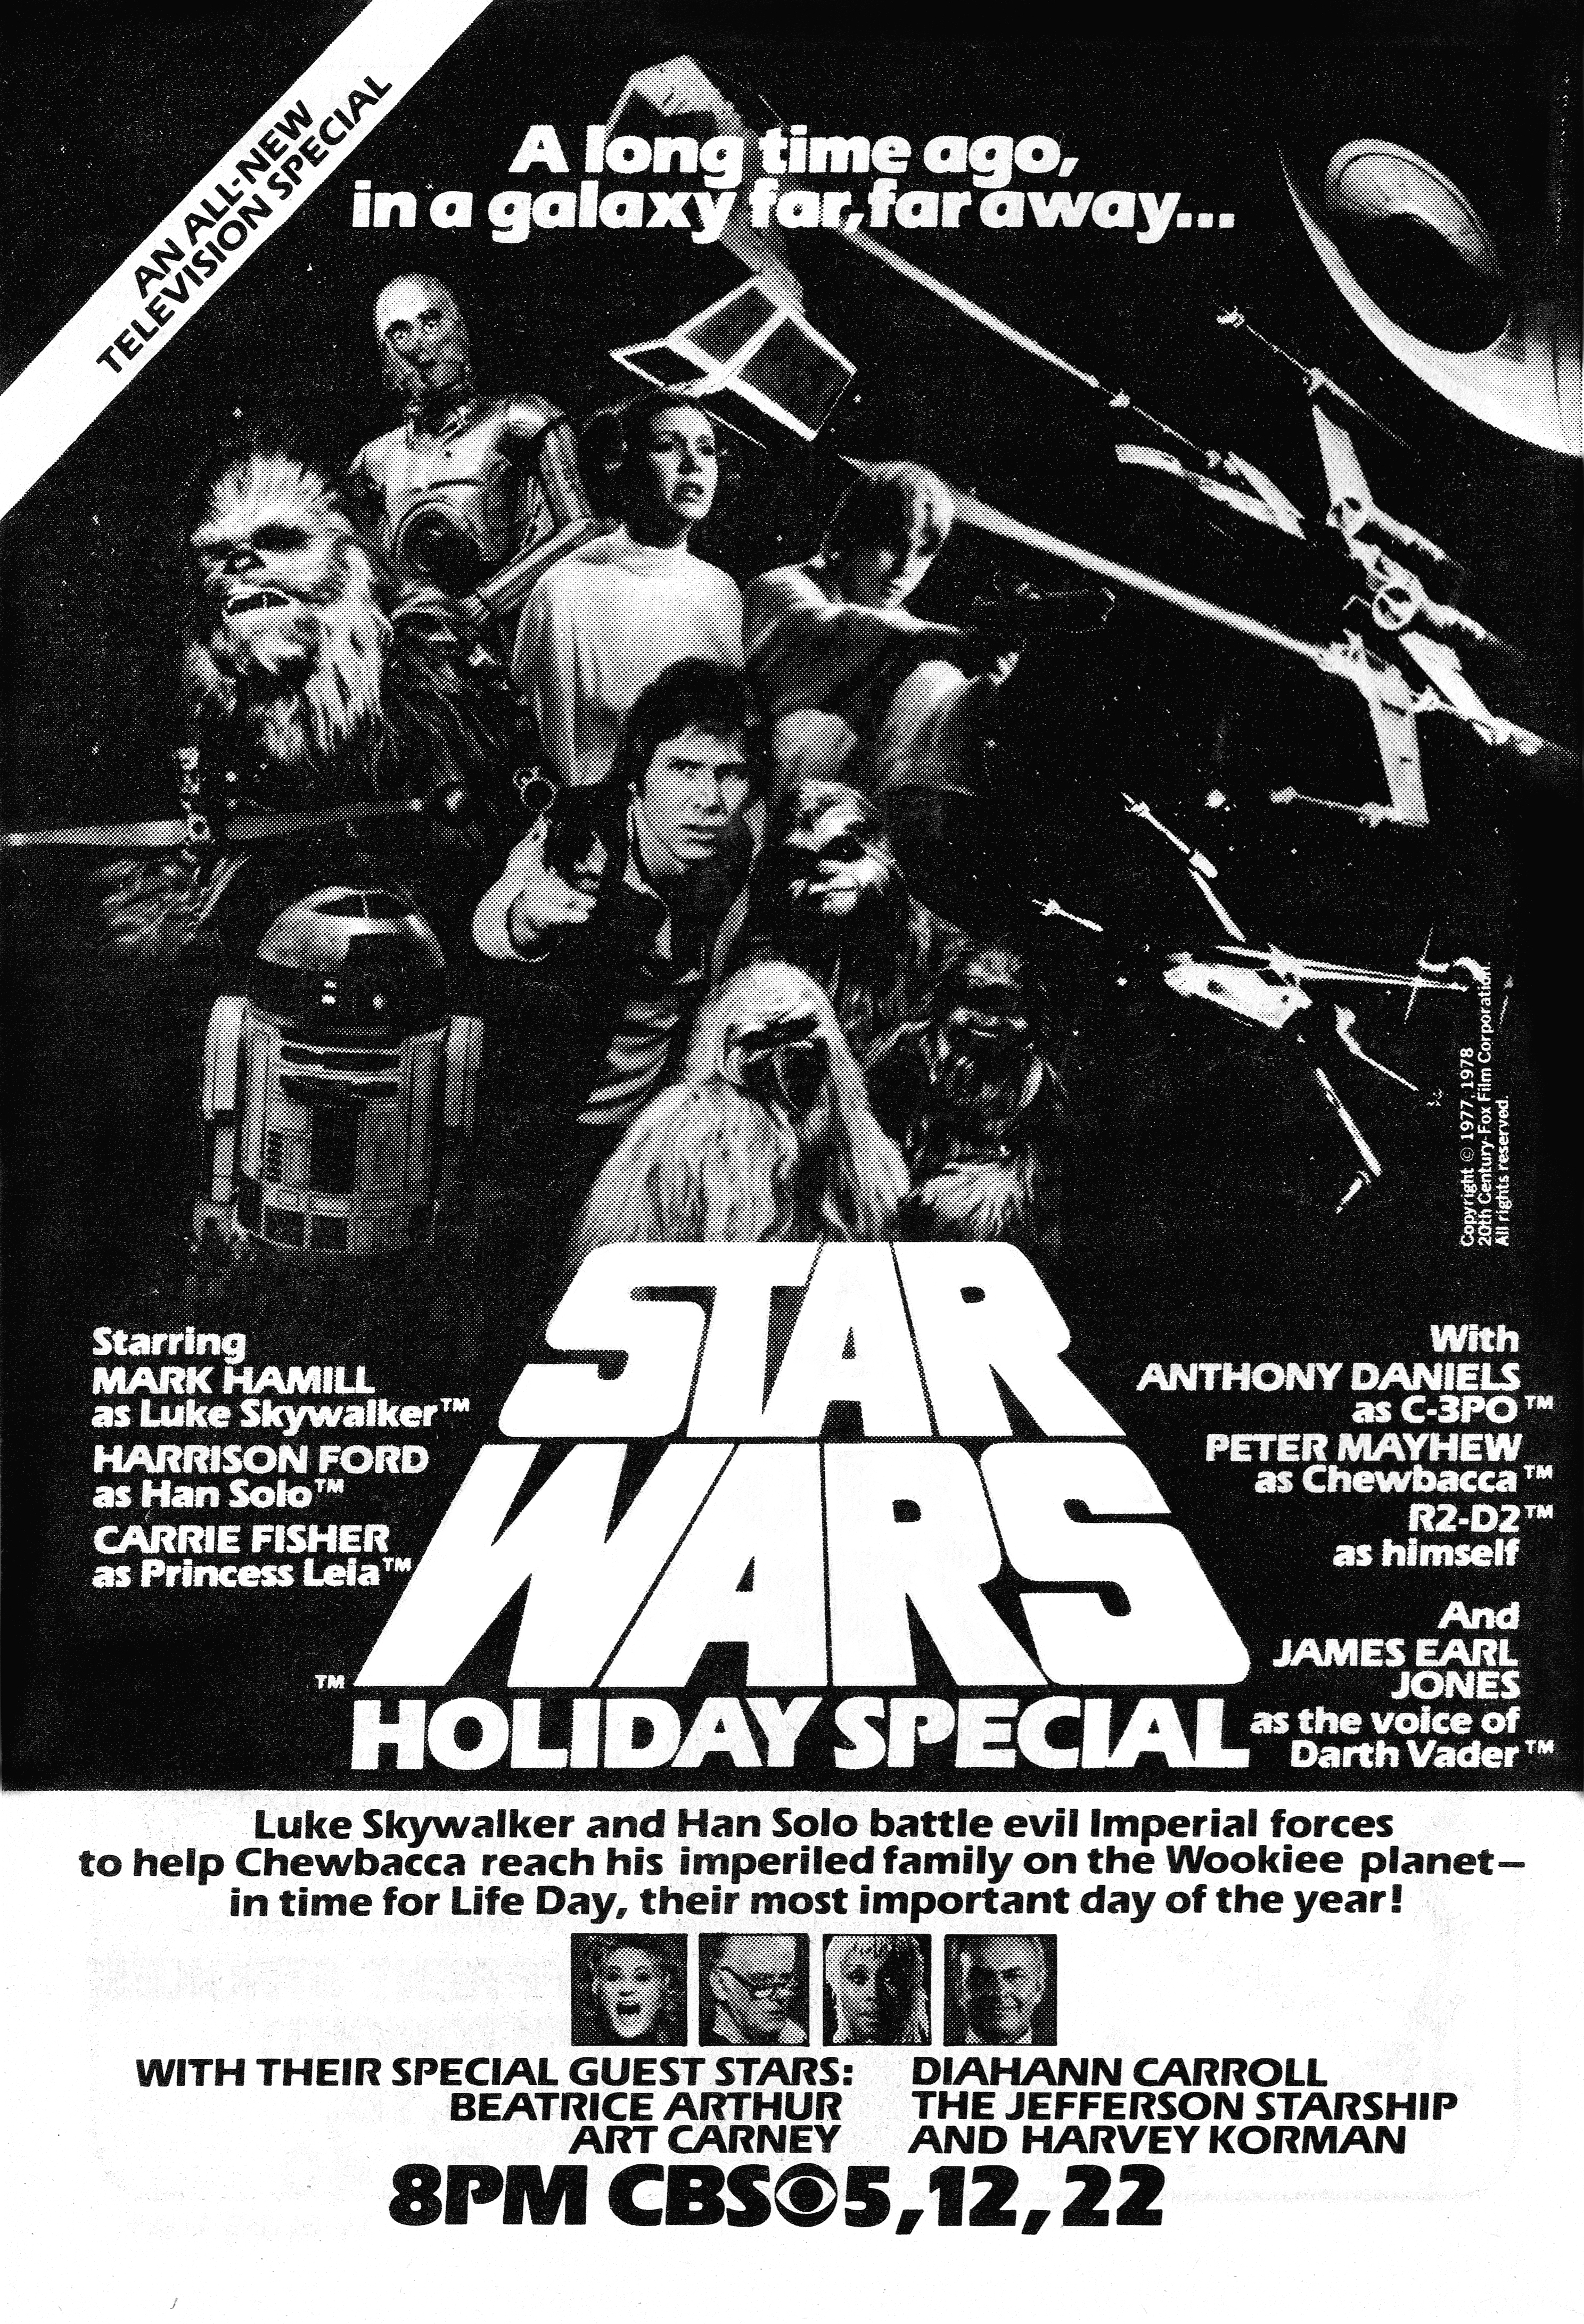 The Holiday Special no one wants to remember.